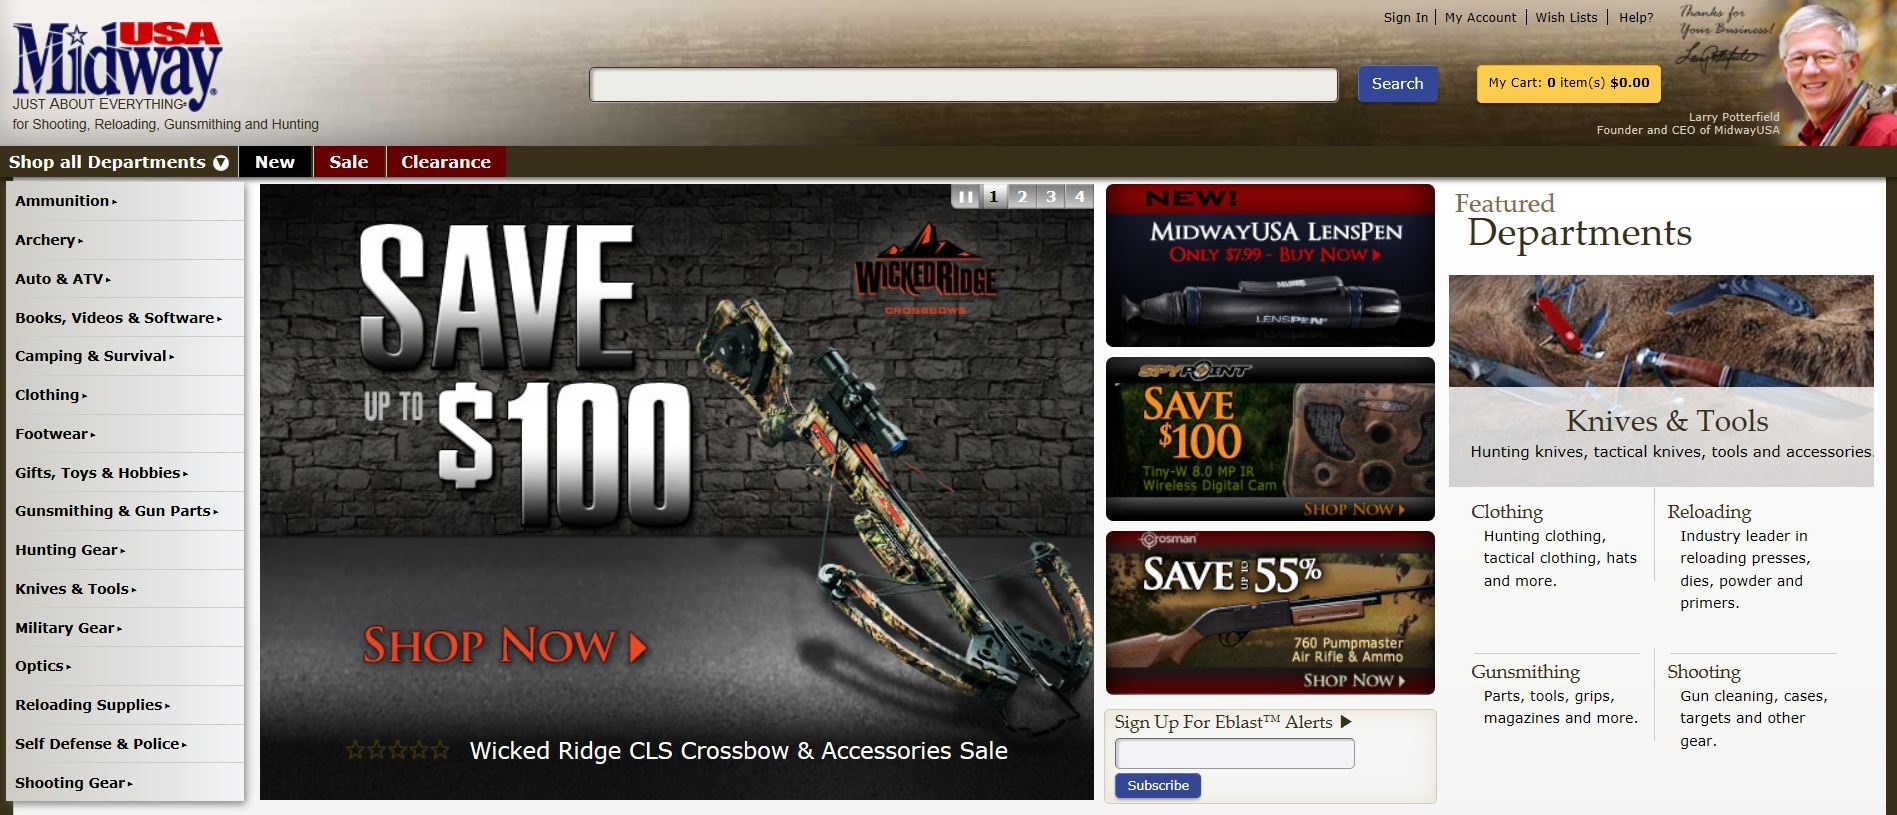 Explore bow fishing, hunting and target shooting with MidwayUSA's assortment of recurve and compound bows. MidwayUSA also carries gifts for your favorite hunter along with gift certificates if you're not sure what to buy. Be prepared for great deals with MidwayUSA coupon codes.